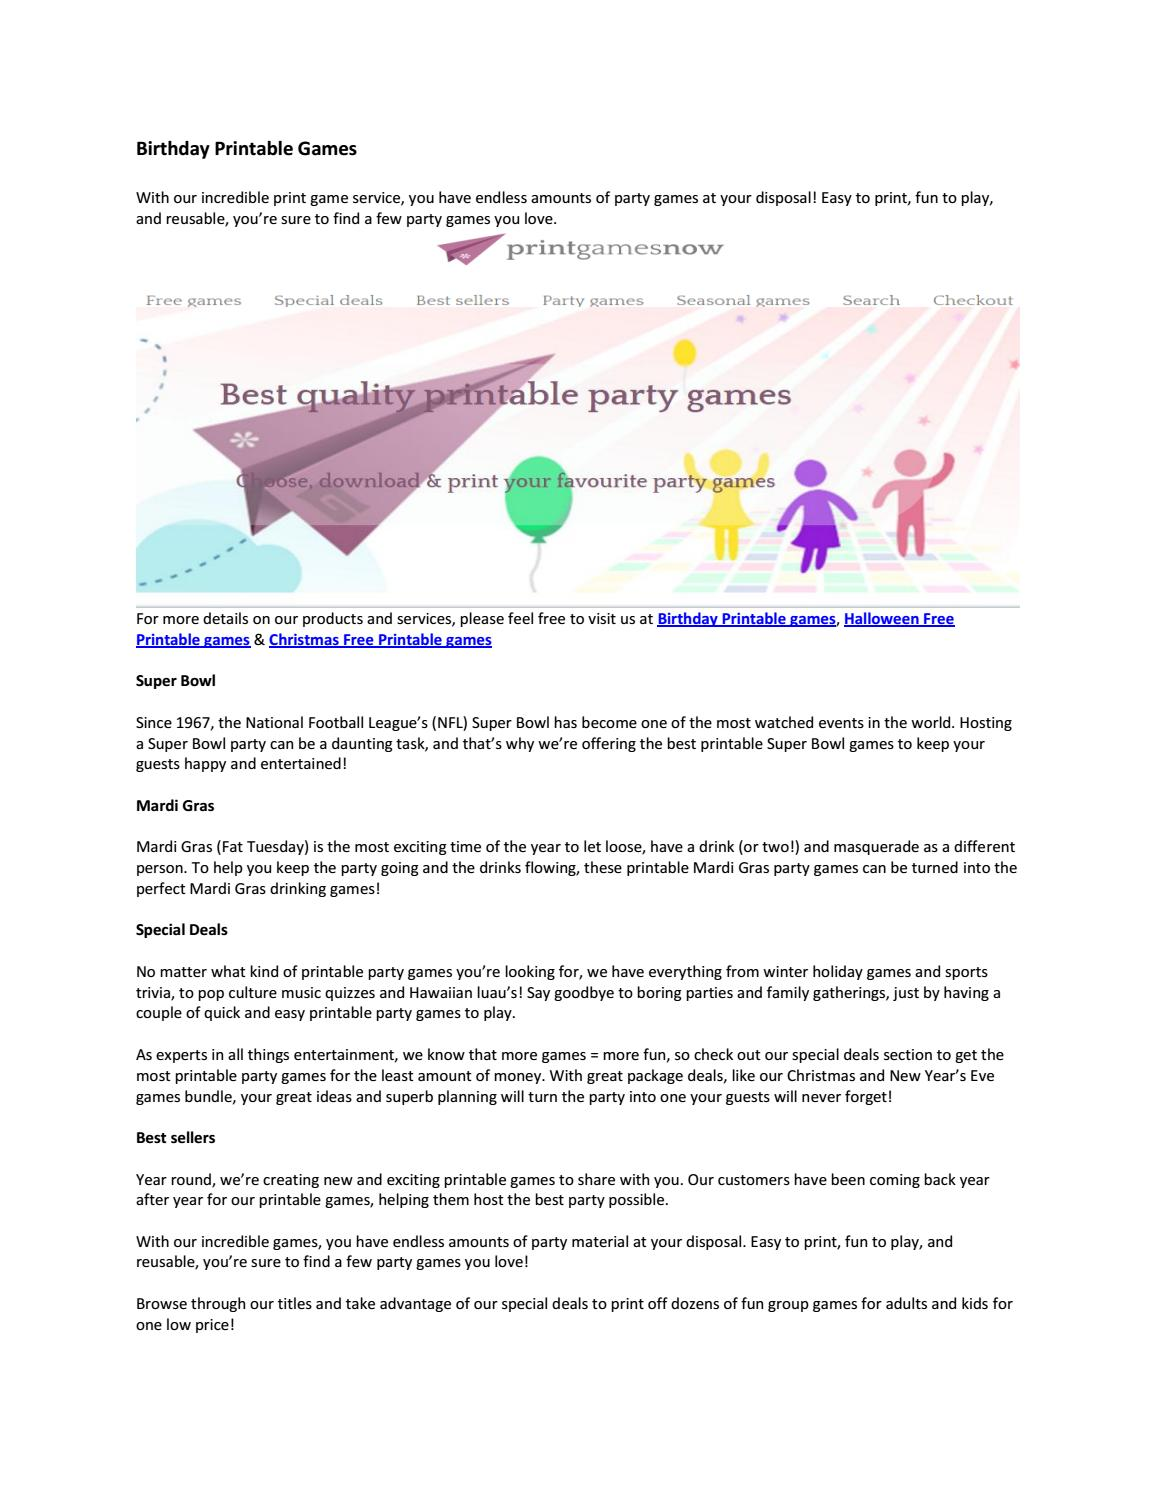 picture relating to Mardi Gras Trivia Quiz Printable titled Birthday printable video games through printgamesnow - issuu